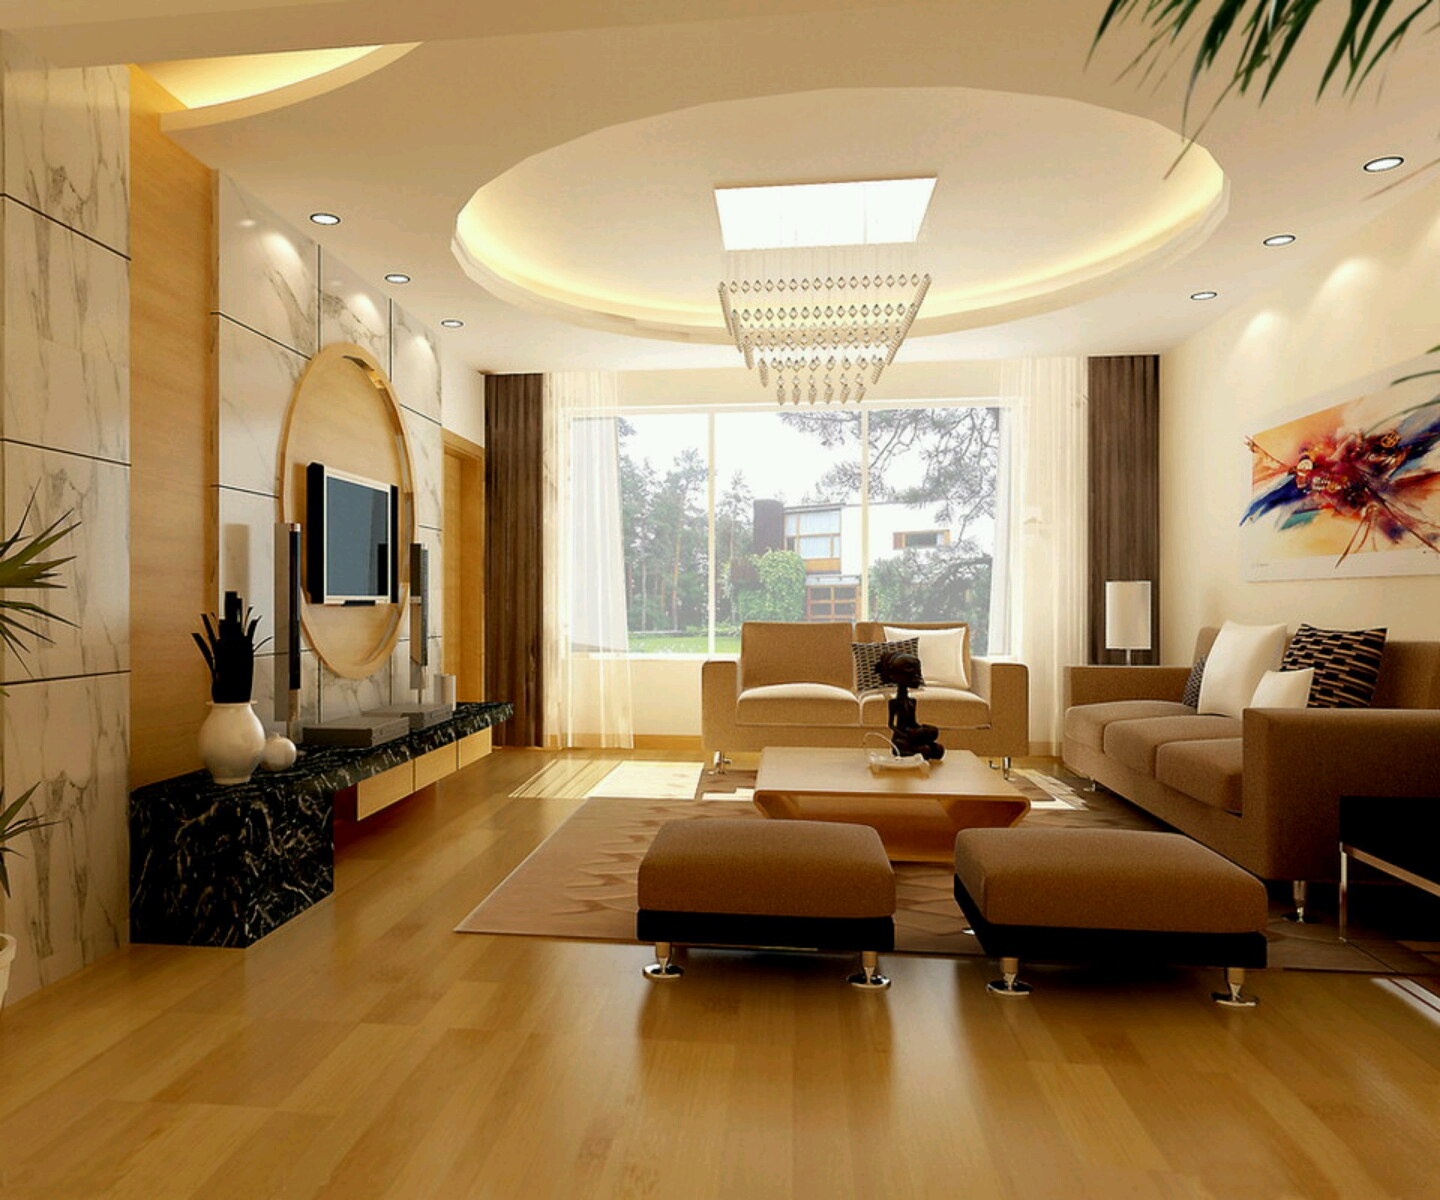 Modern interior decoration living rooms ceiling designs - Latest ceiling design for living room ...